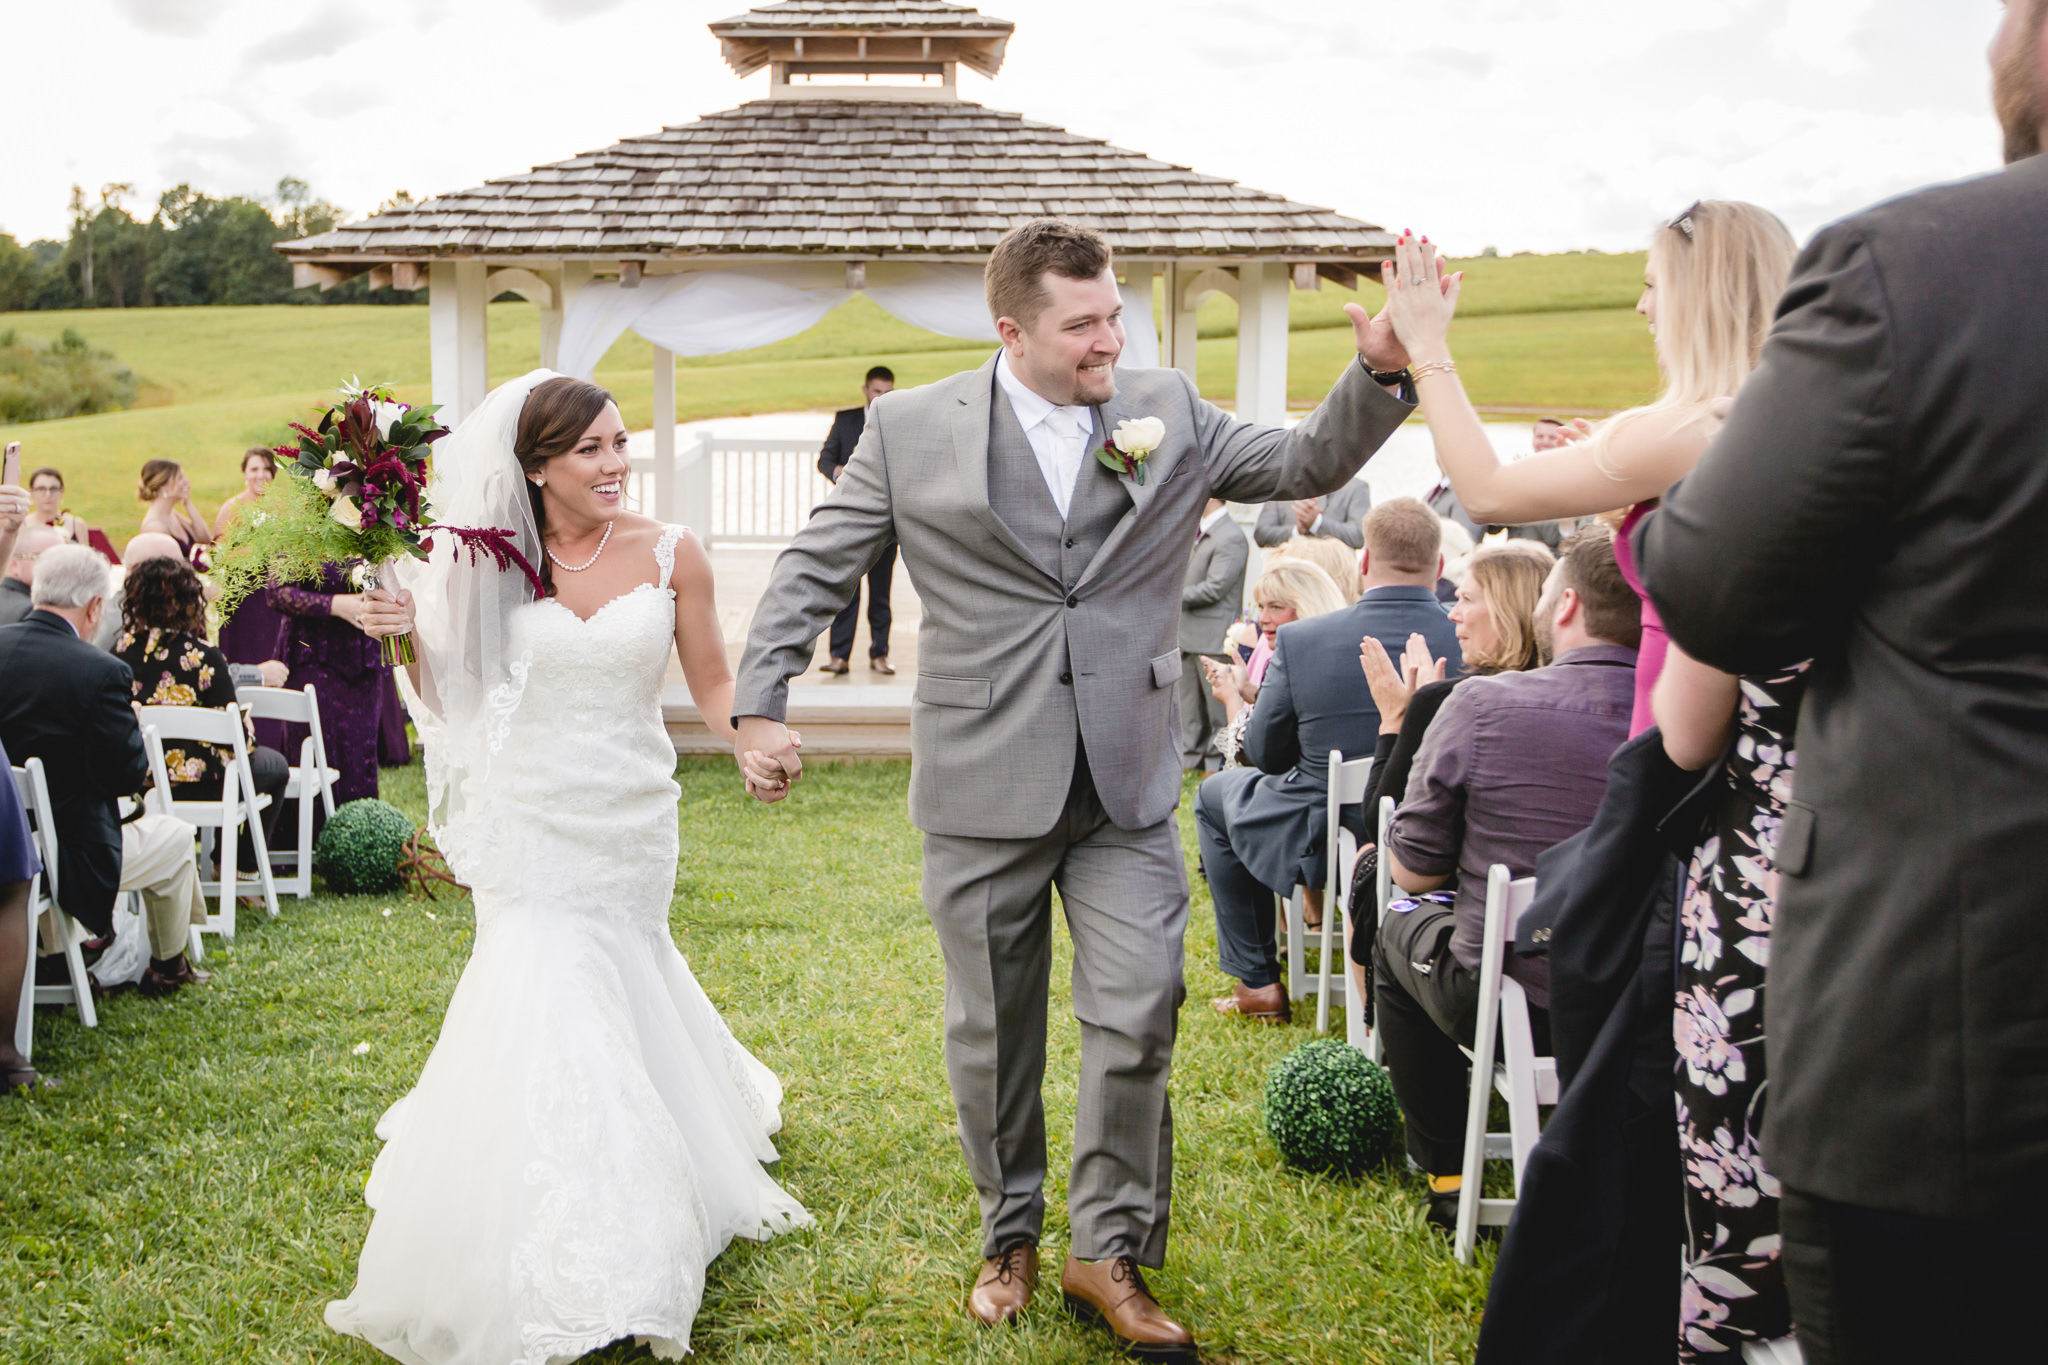 Groom high fives guests after his wedding ceremony at White Barn